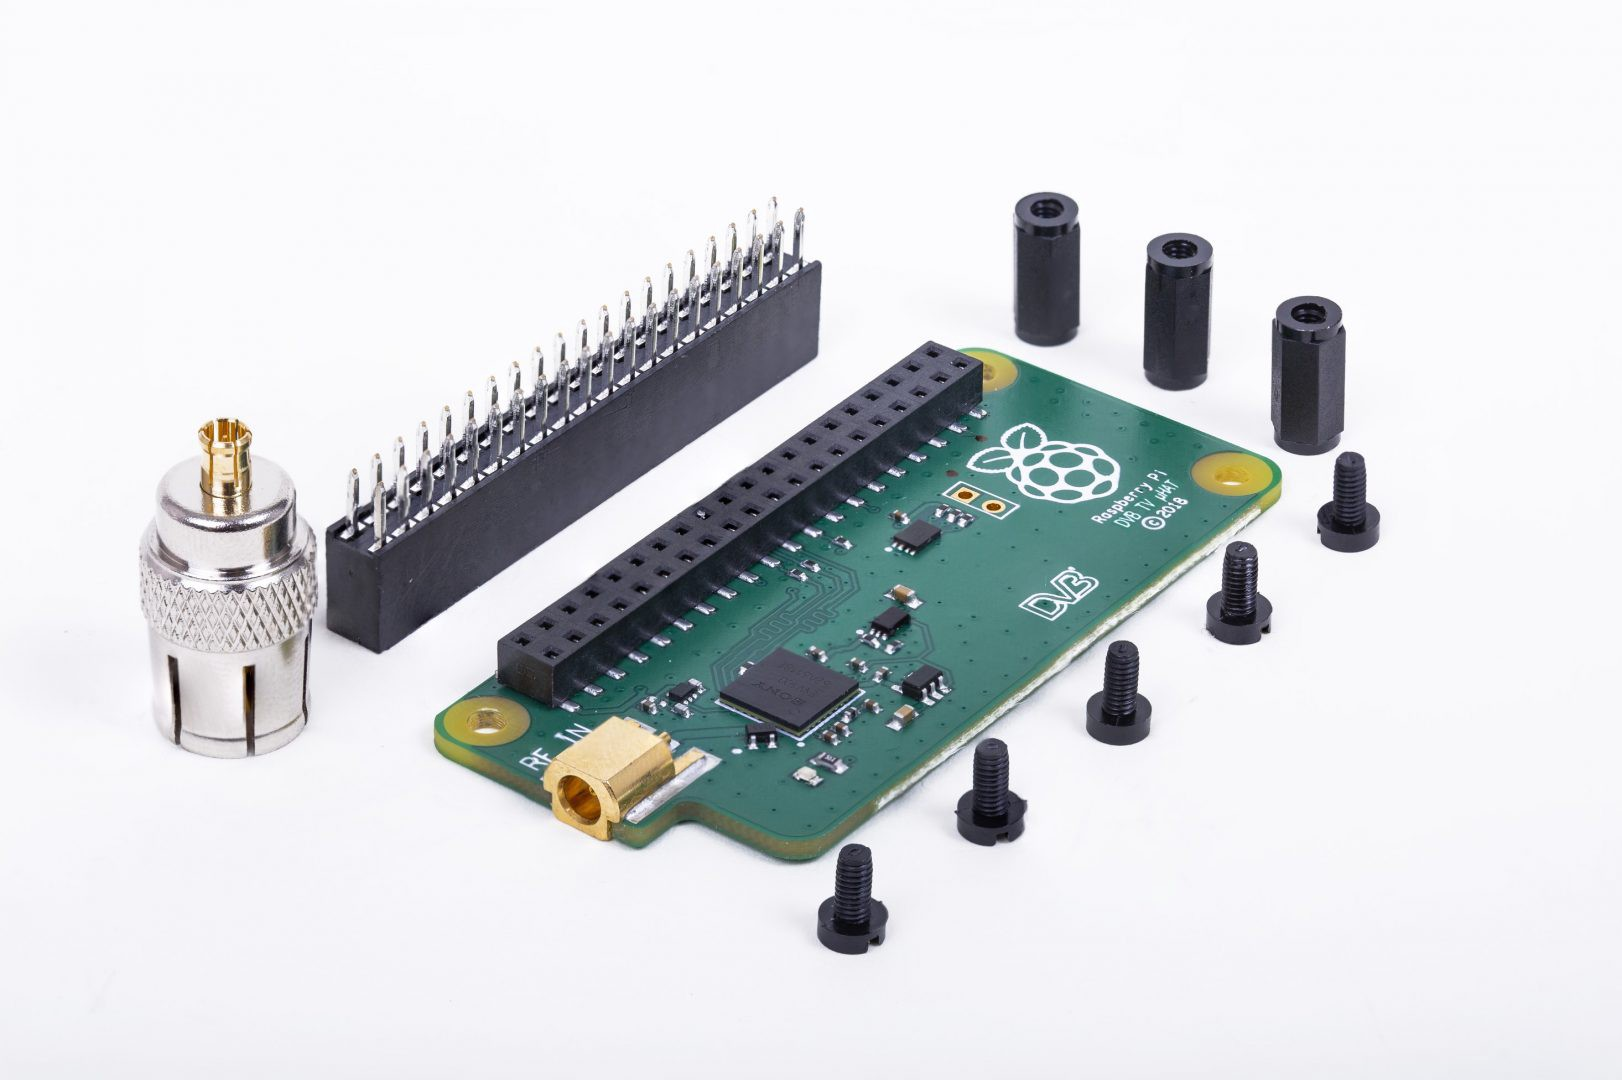 Introducing the Raspberry Pi TV HAT - Hackster Blog